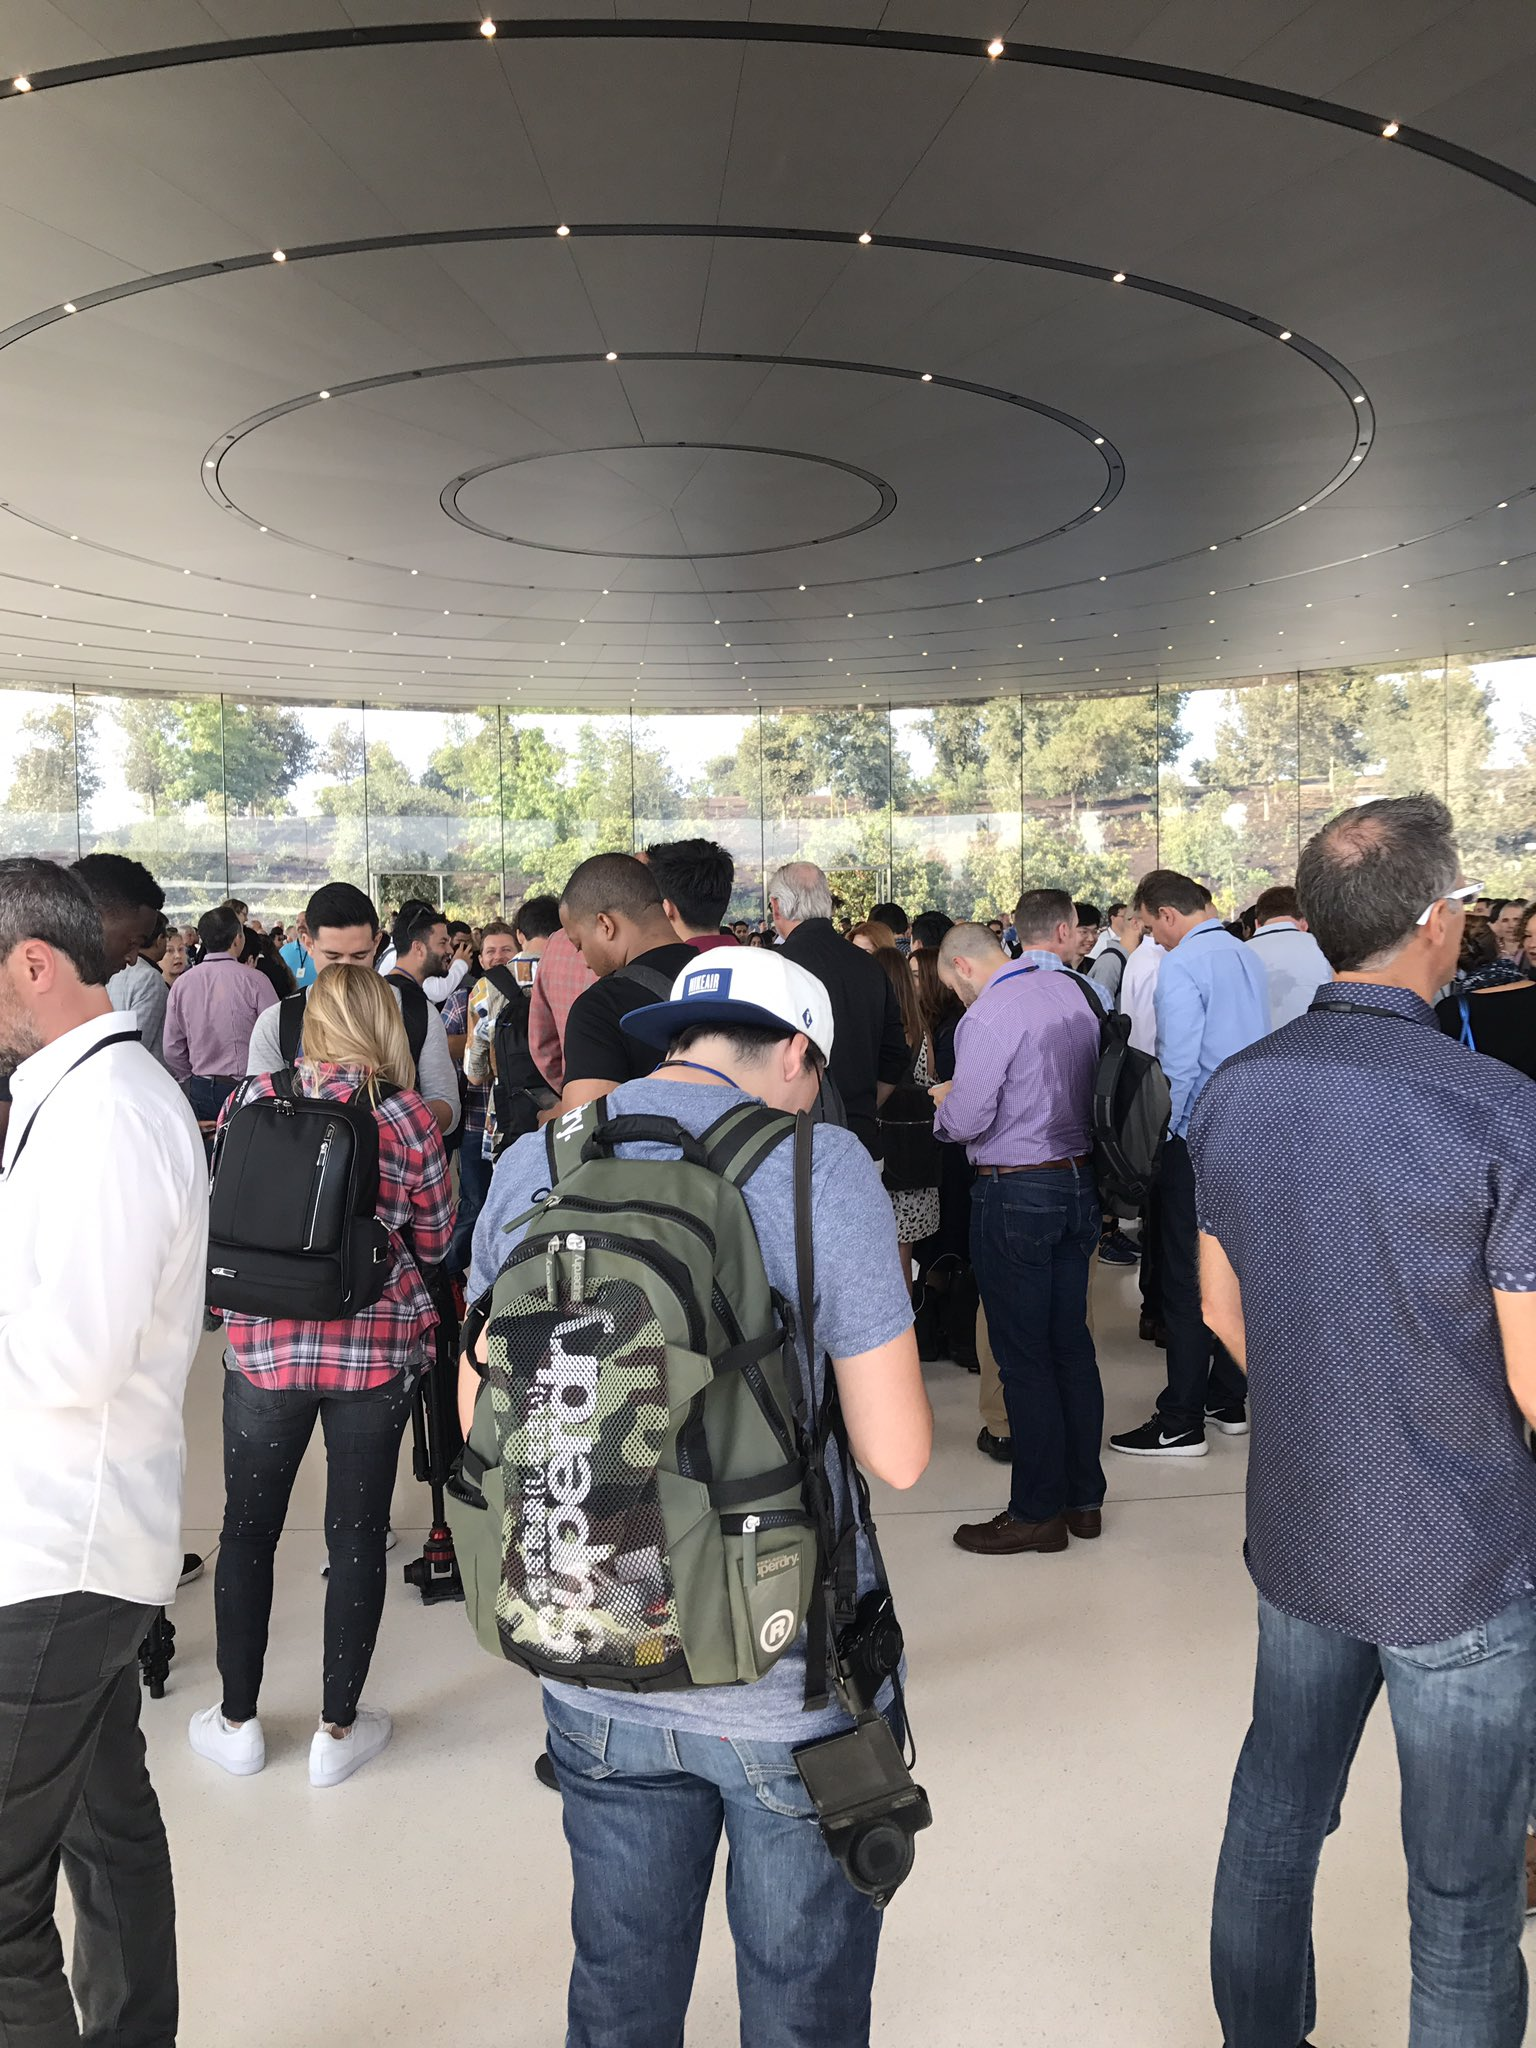 Entrance to steve jobs theater. We're walking down into this hole. https://t.co/551SLHI5Il